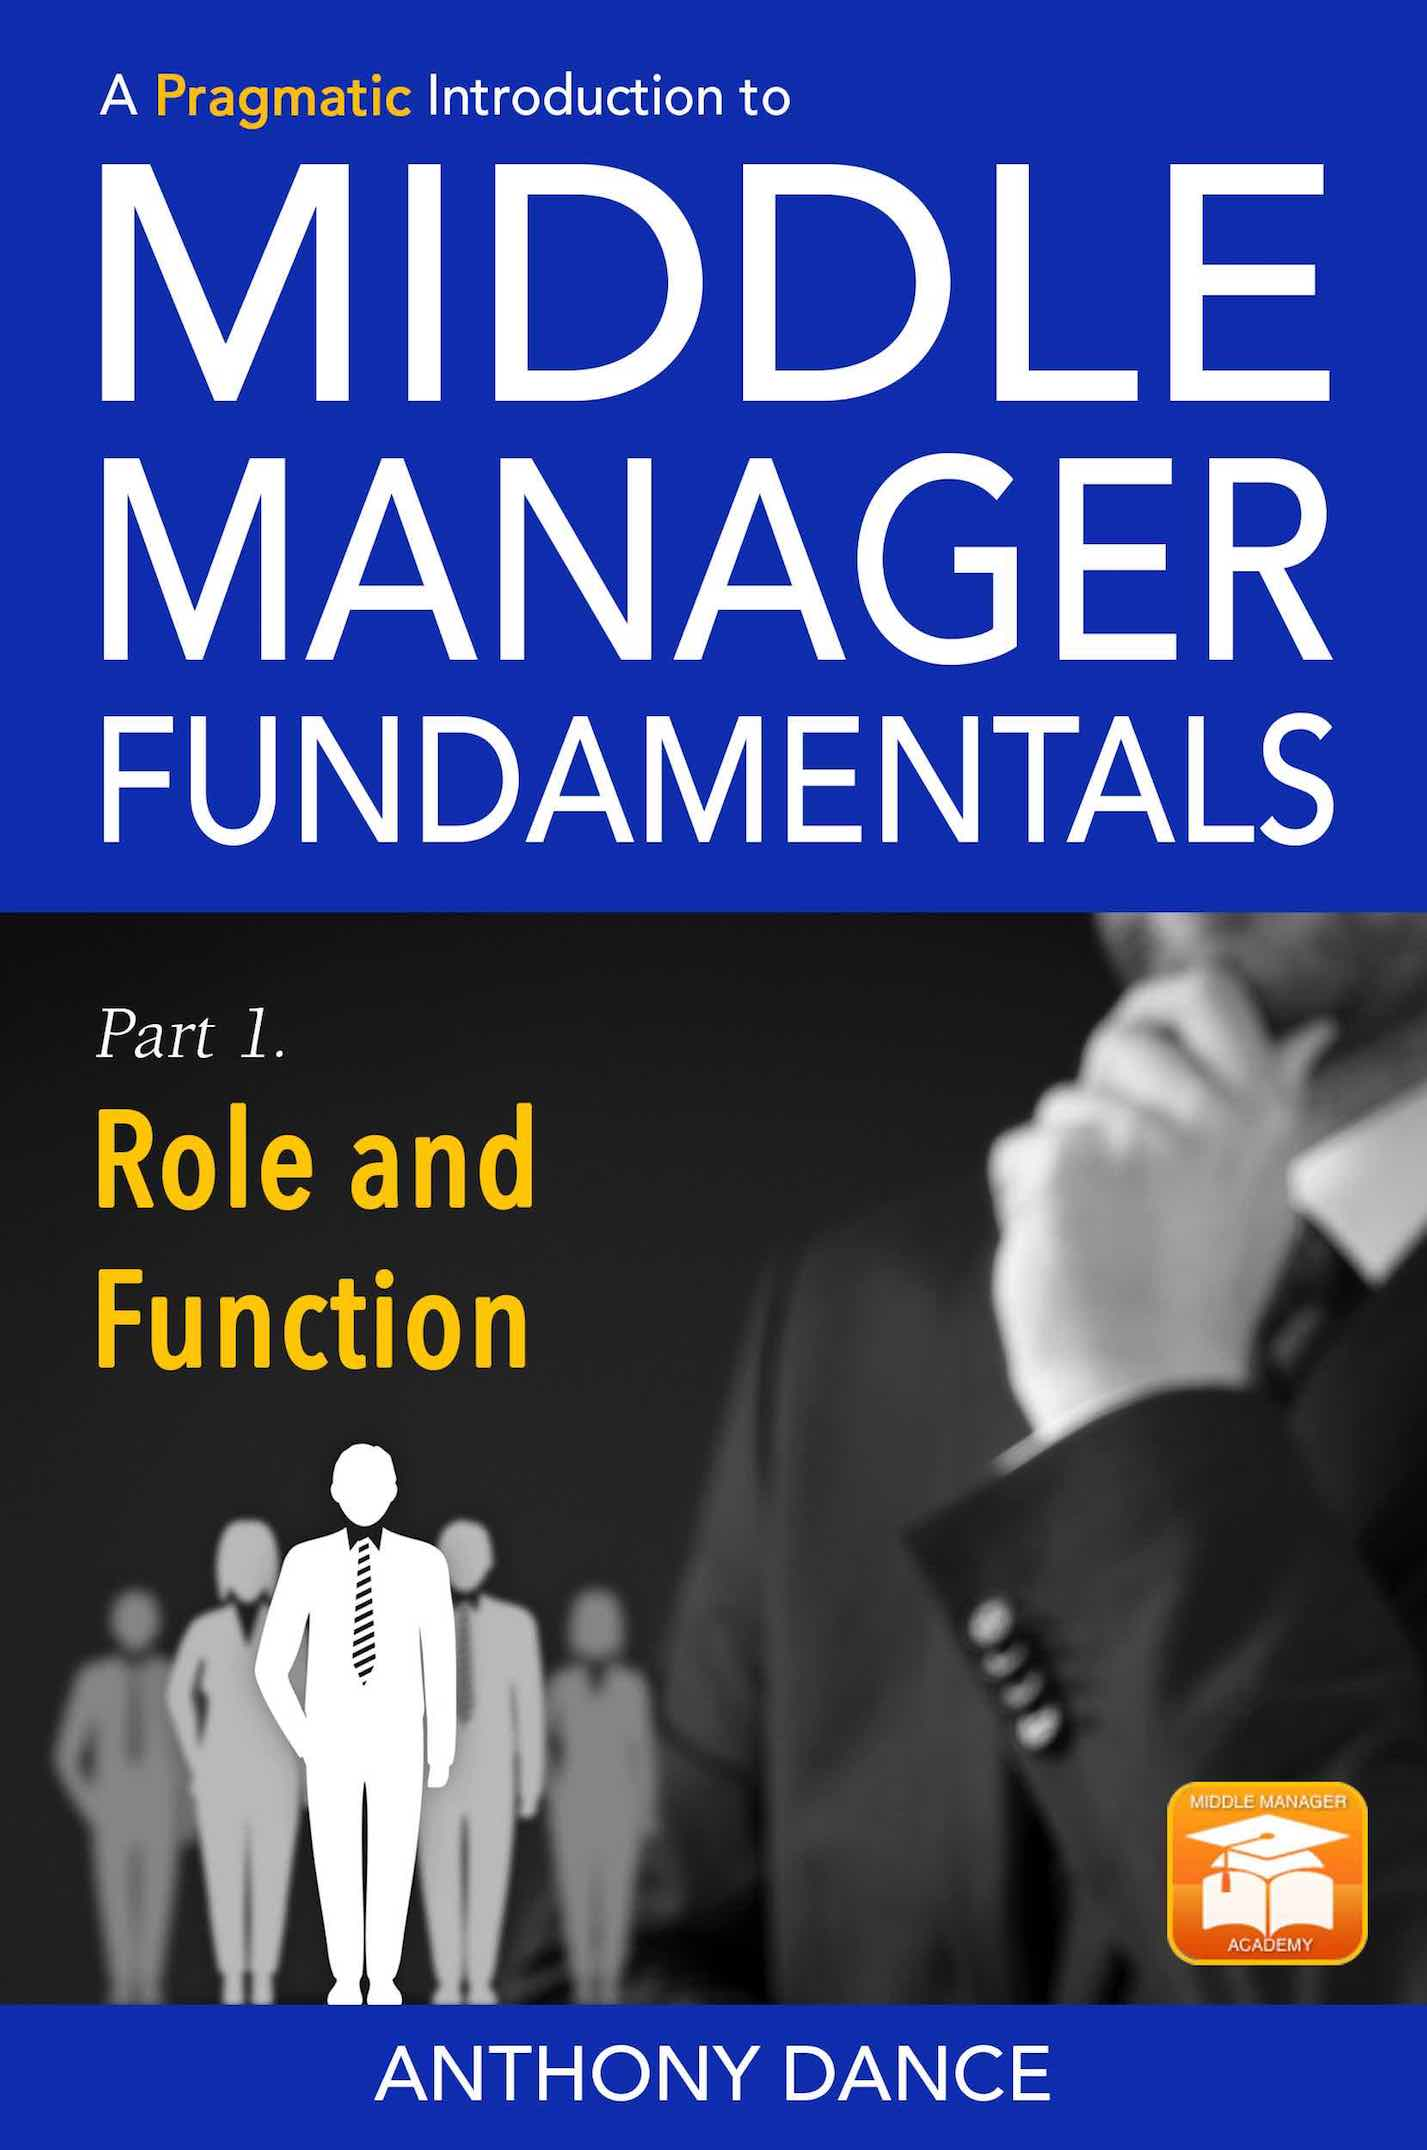 Middle Manager Fundamentals: Part 1 - Role and Function